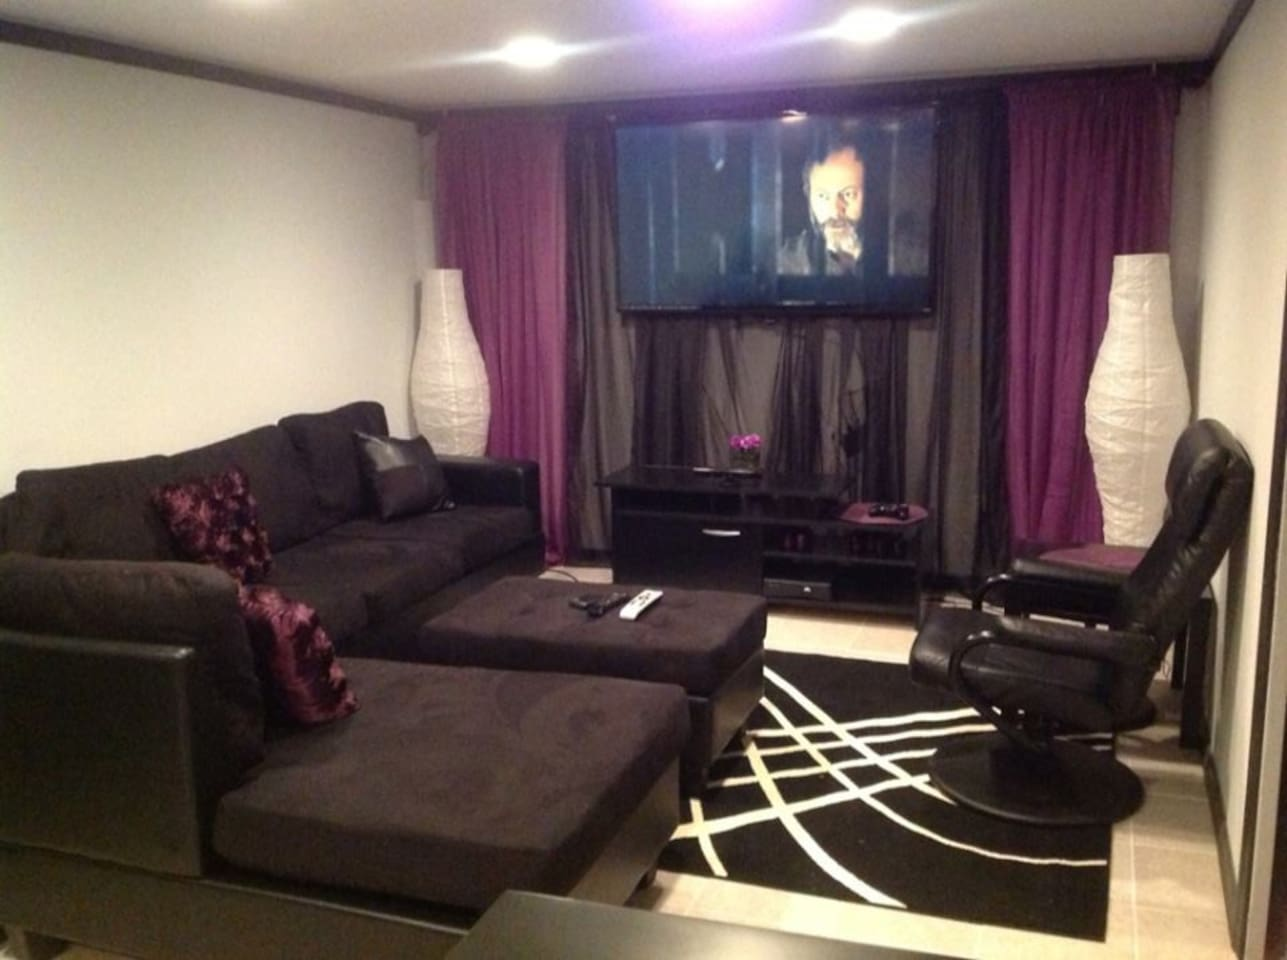 Cozy theater style TV Room w/Surround Sound, Direct TV and dimming lights. (security camera unplugged during stay)